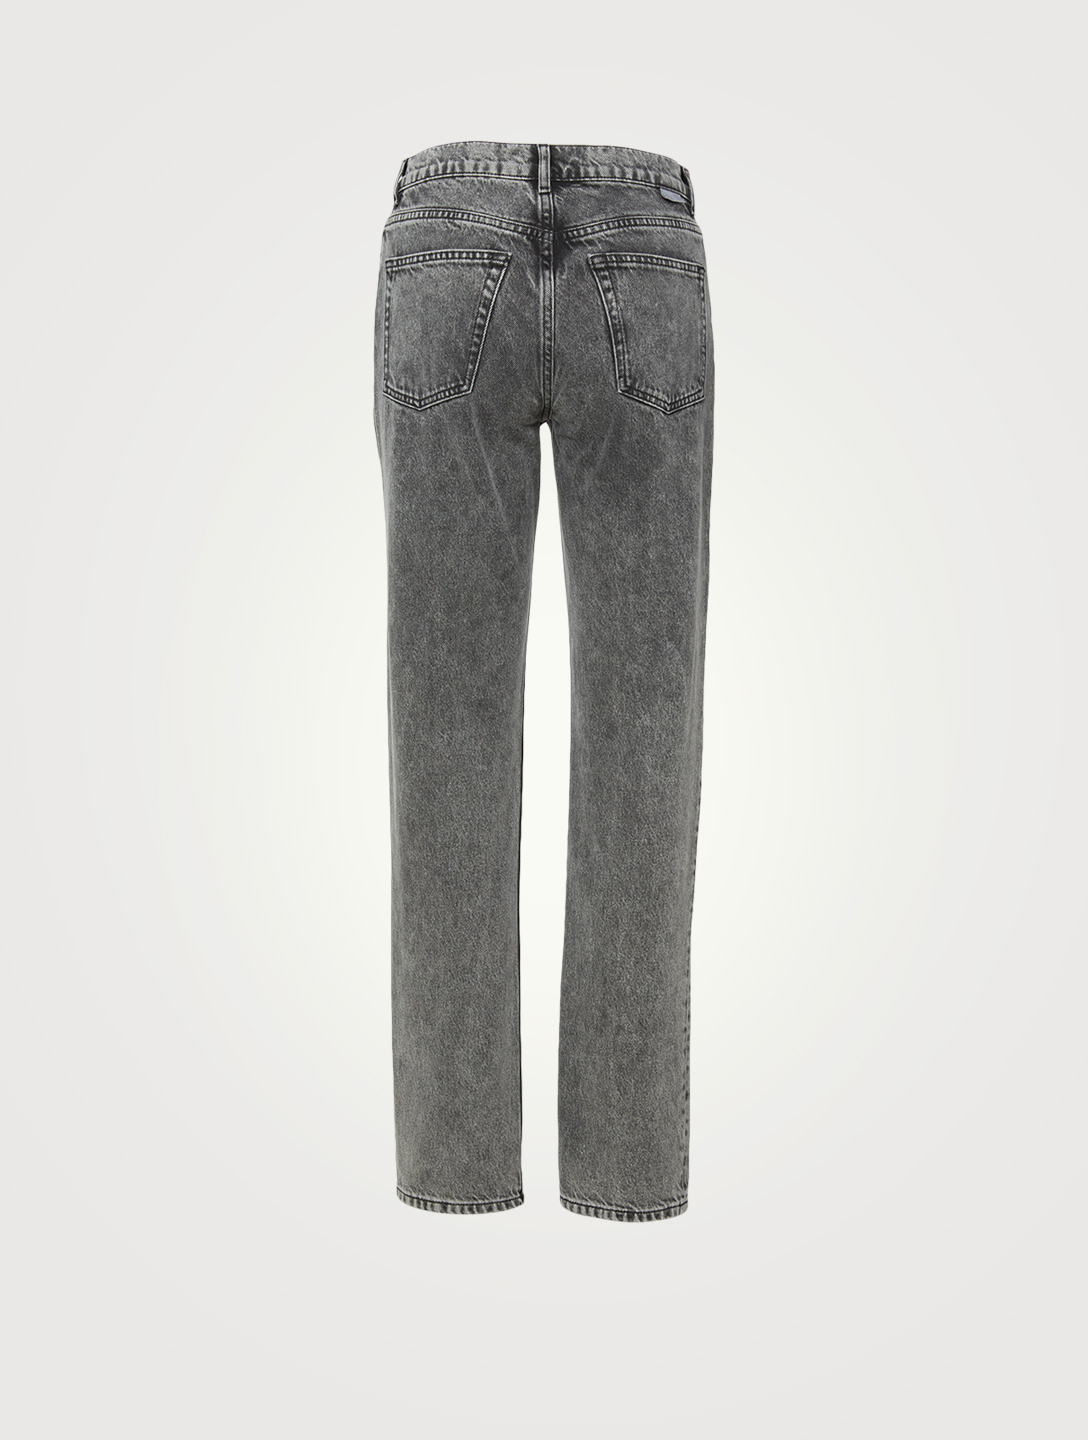 BOYISH Casey Rigid Straight-Leg Jeans Women's Grey